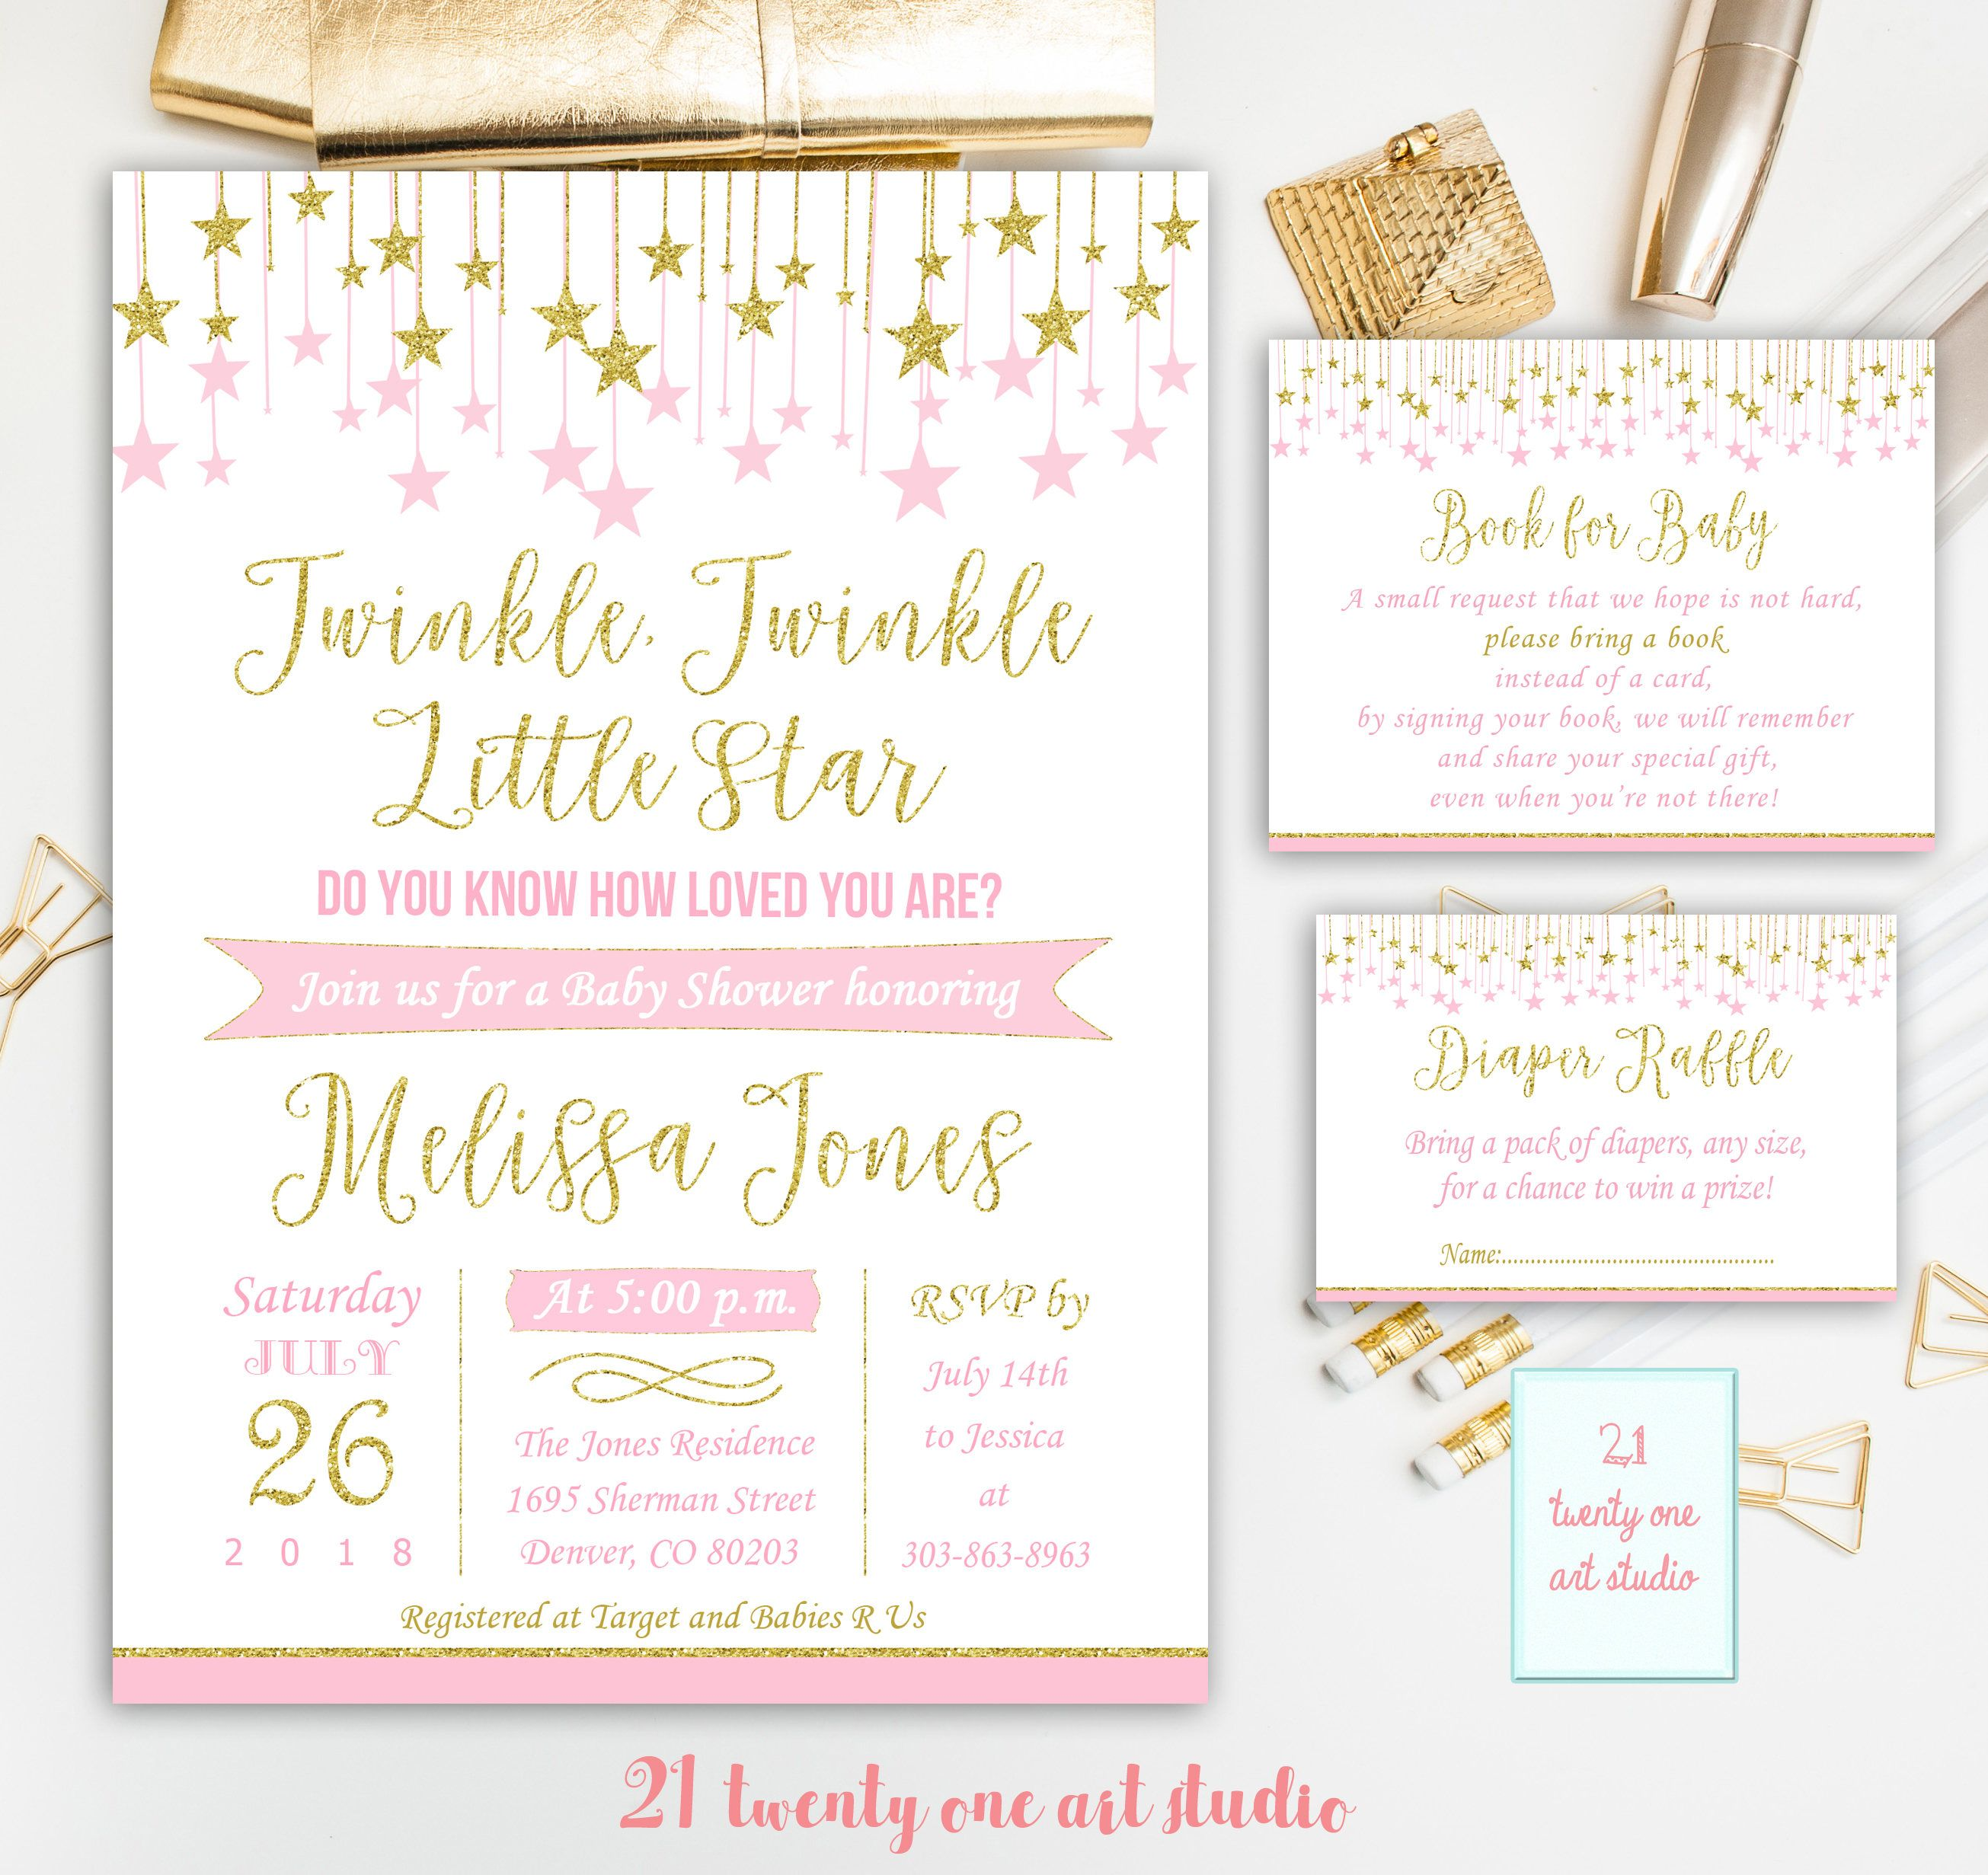 Twinkle Twinkle Little Star Baby Shower Invitation, + Book for ...